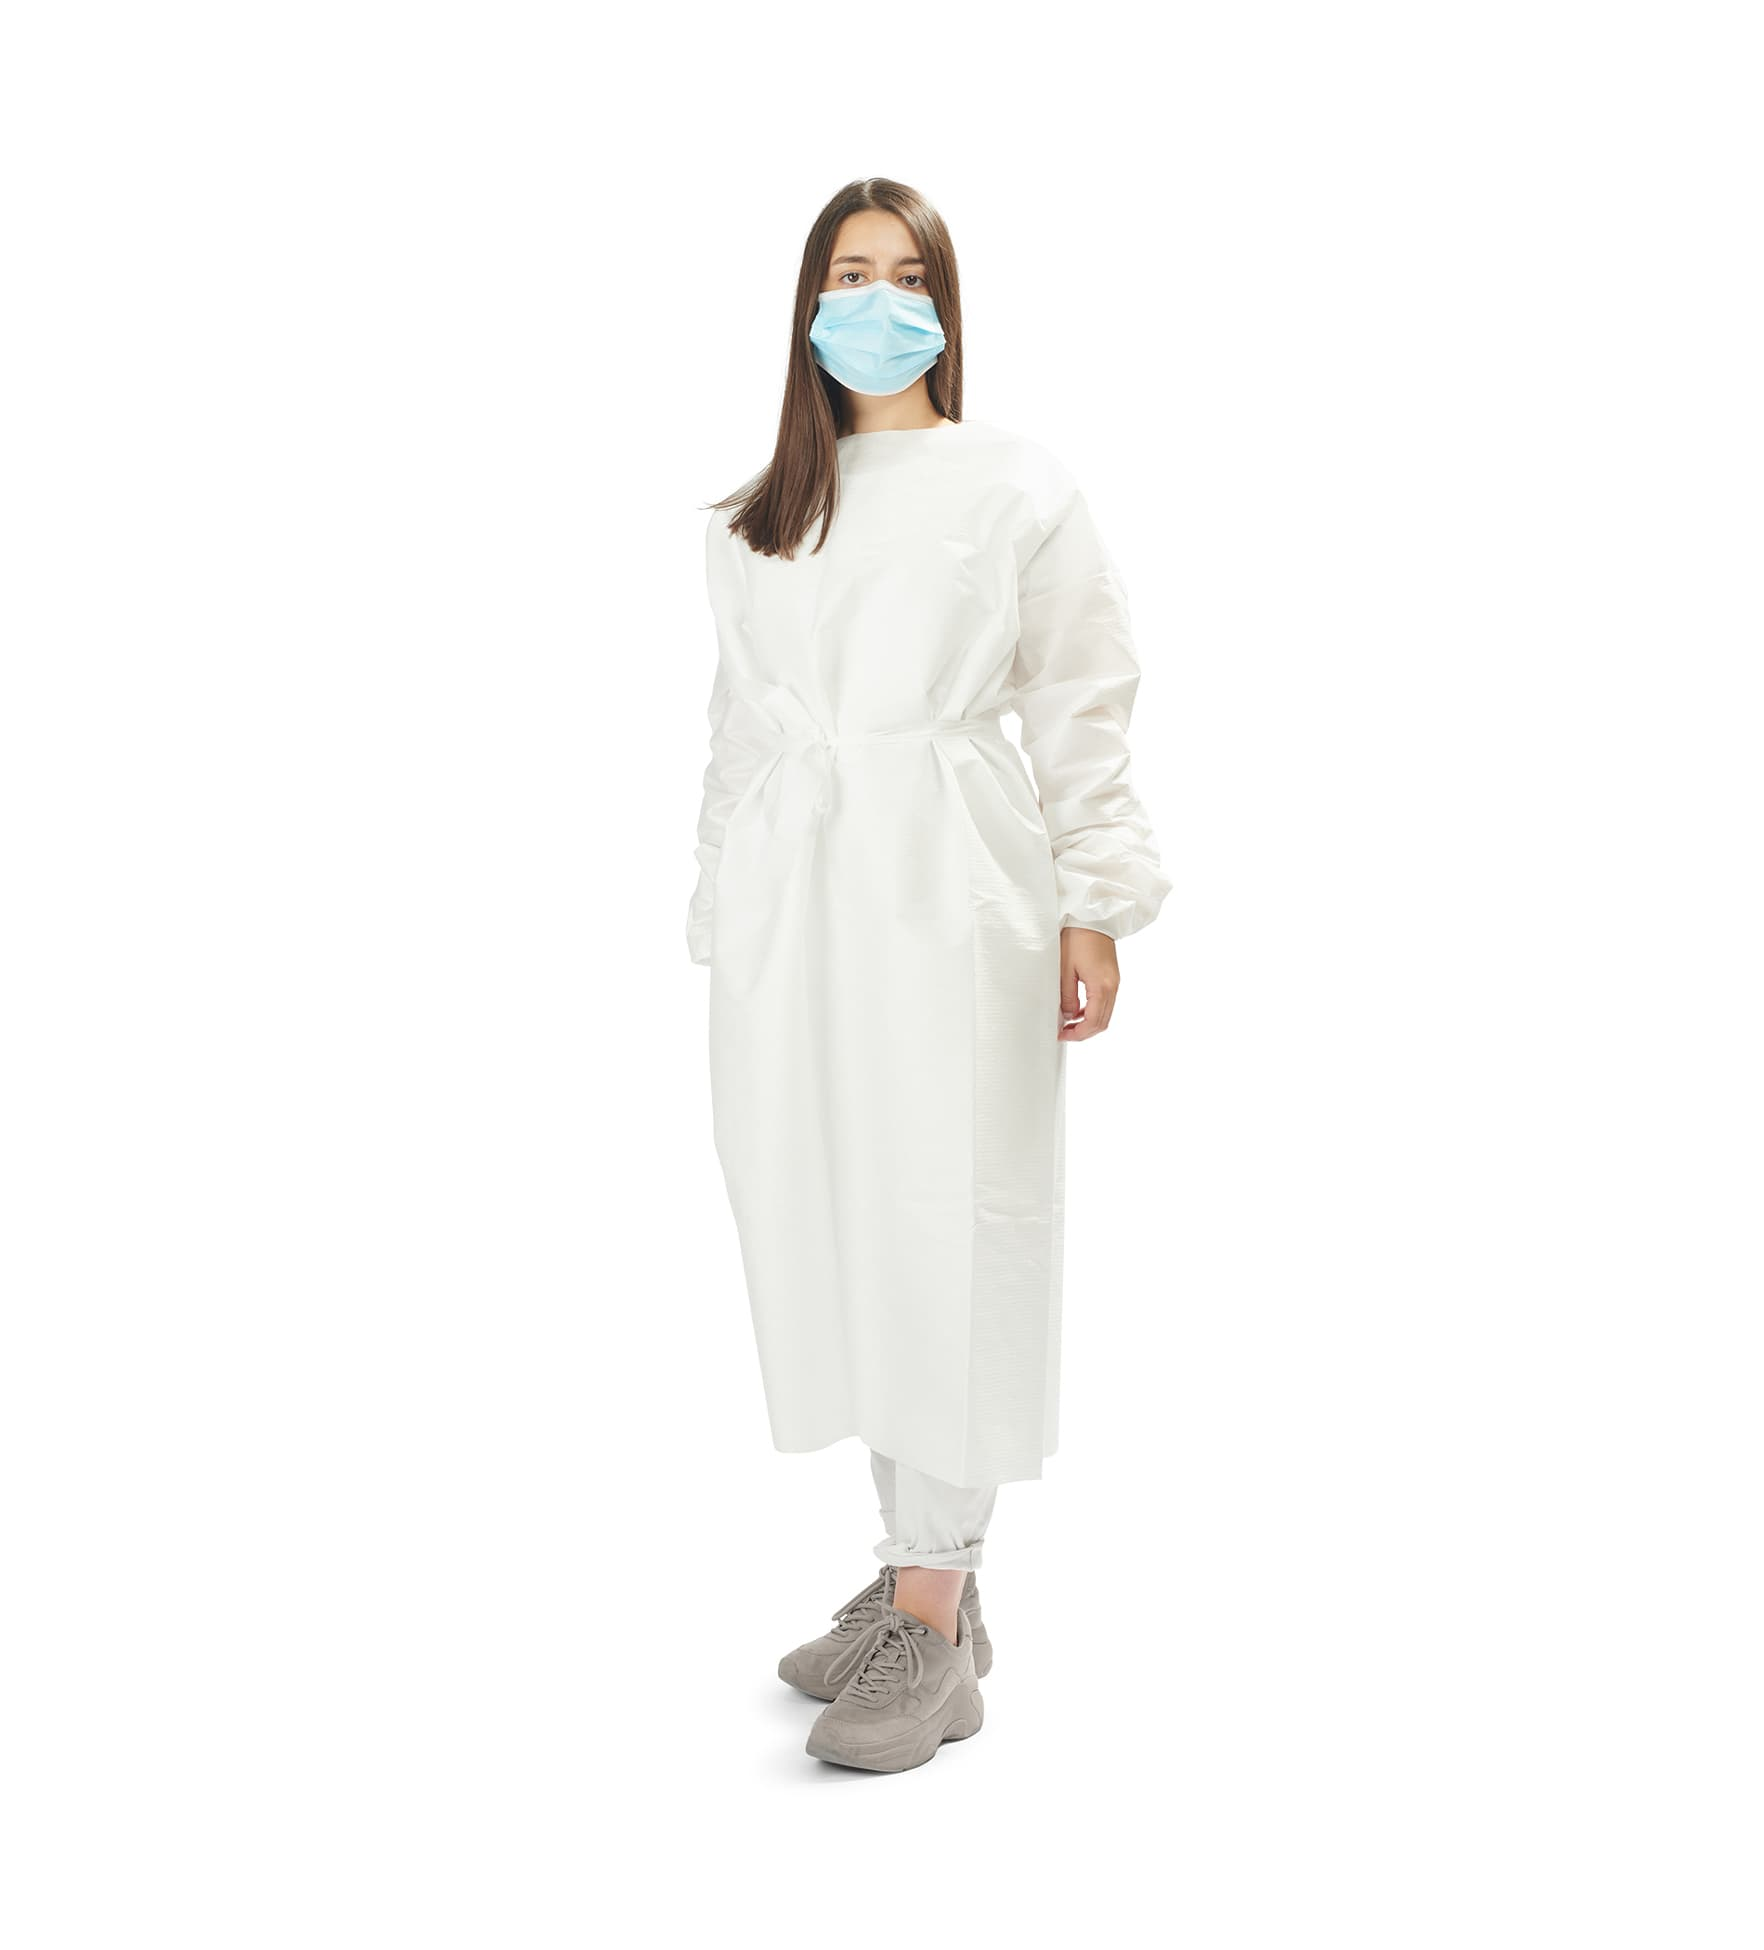 batas impermeáveis 2 - waterproof gowns - clothe protect